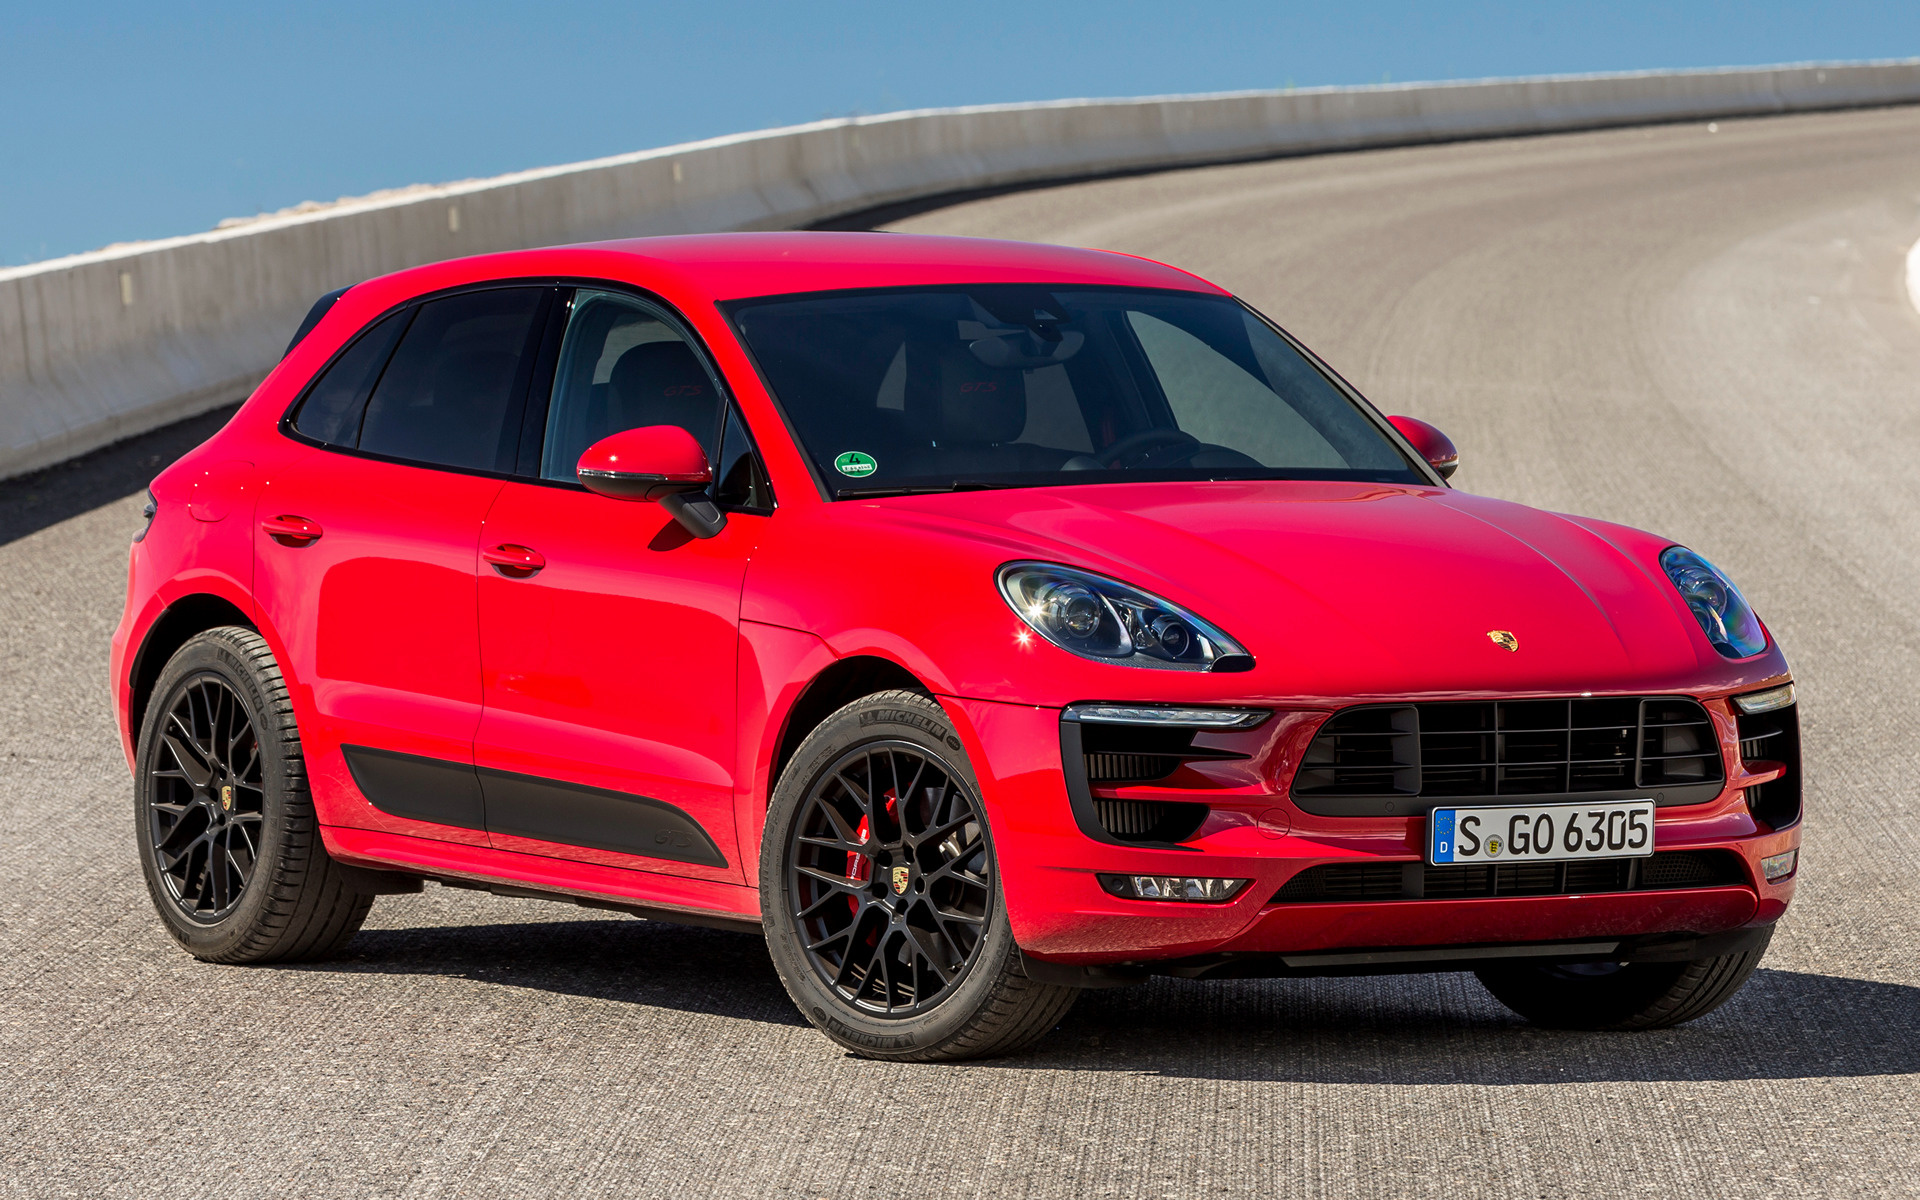 Porsche Macan GTS (2015) Wallpapers and HD Images - Car Pixel on honda fit in red, kia cadenza in red, range rover in red, dodge journey in red, maserati in red, honda pilot in red, bentley in red, audi in red, car in red, hennessey venom gt in red, ferrari in red, bugatti in red, honda civic in red, ford flex in red, ford focus in red, kia optima in red, lincoln mkt in red, porsche 944 in red, subaru impreza in red, ford ecosport in red,